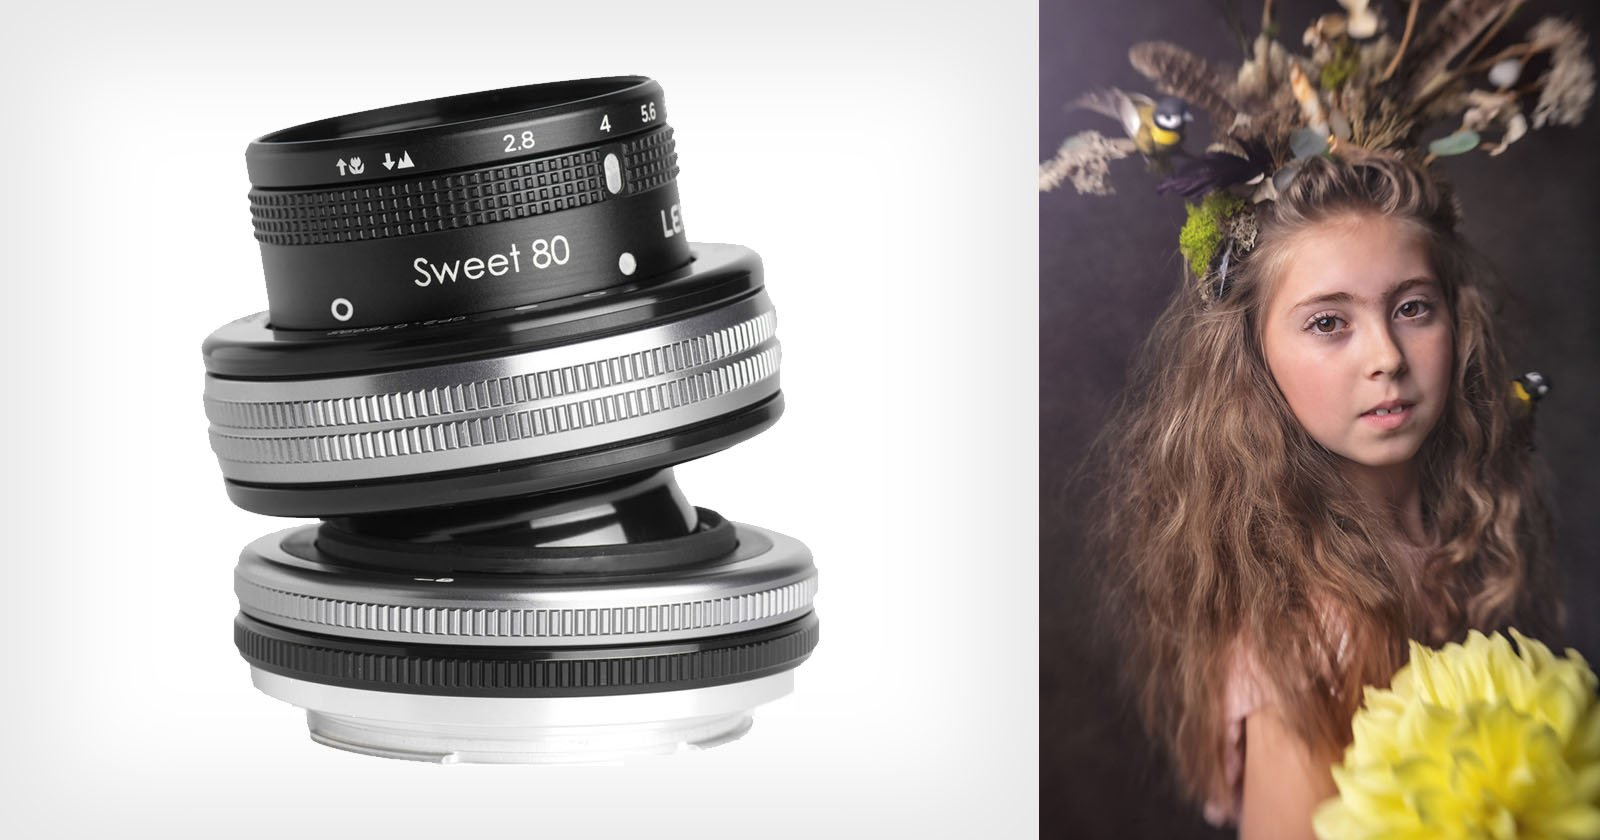 A Portrait Shoot with a Lensbaby Composer Pro and Sweet 80 Optic